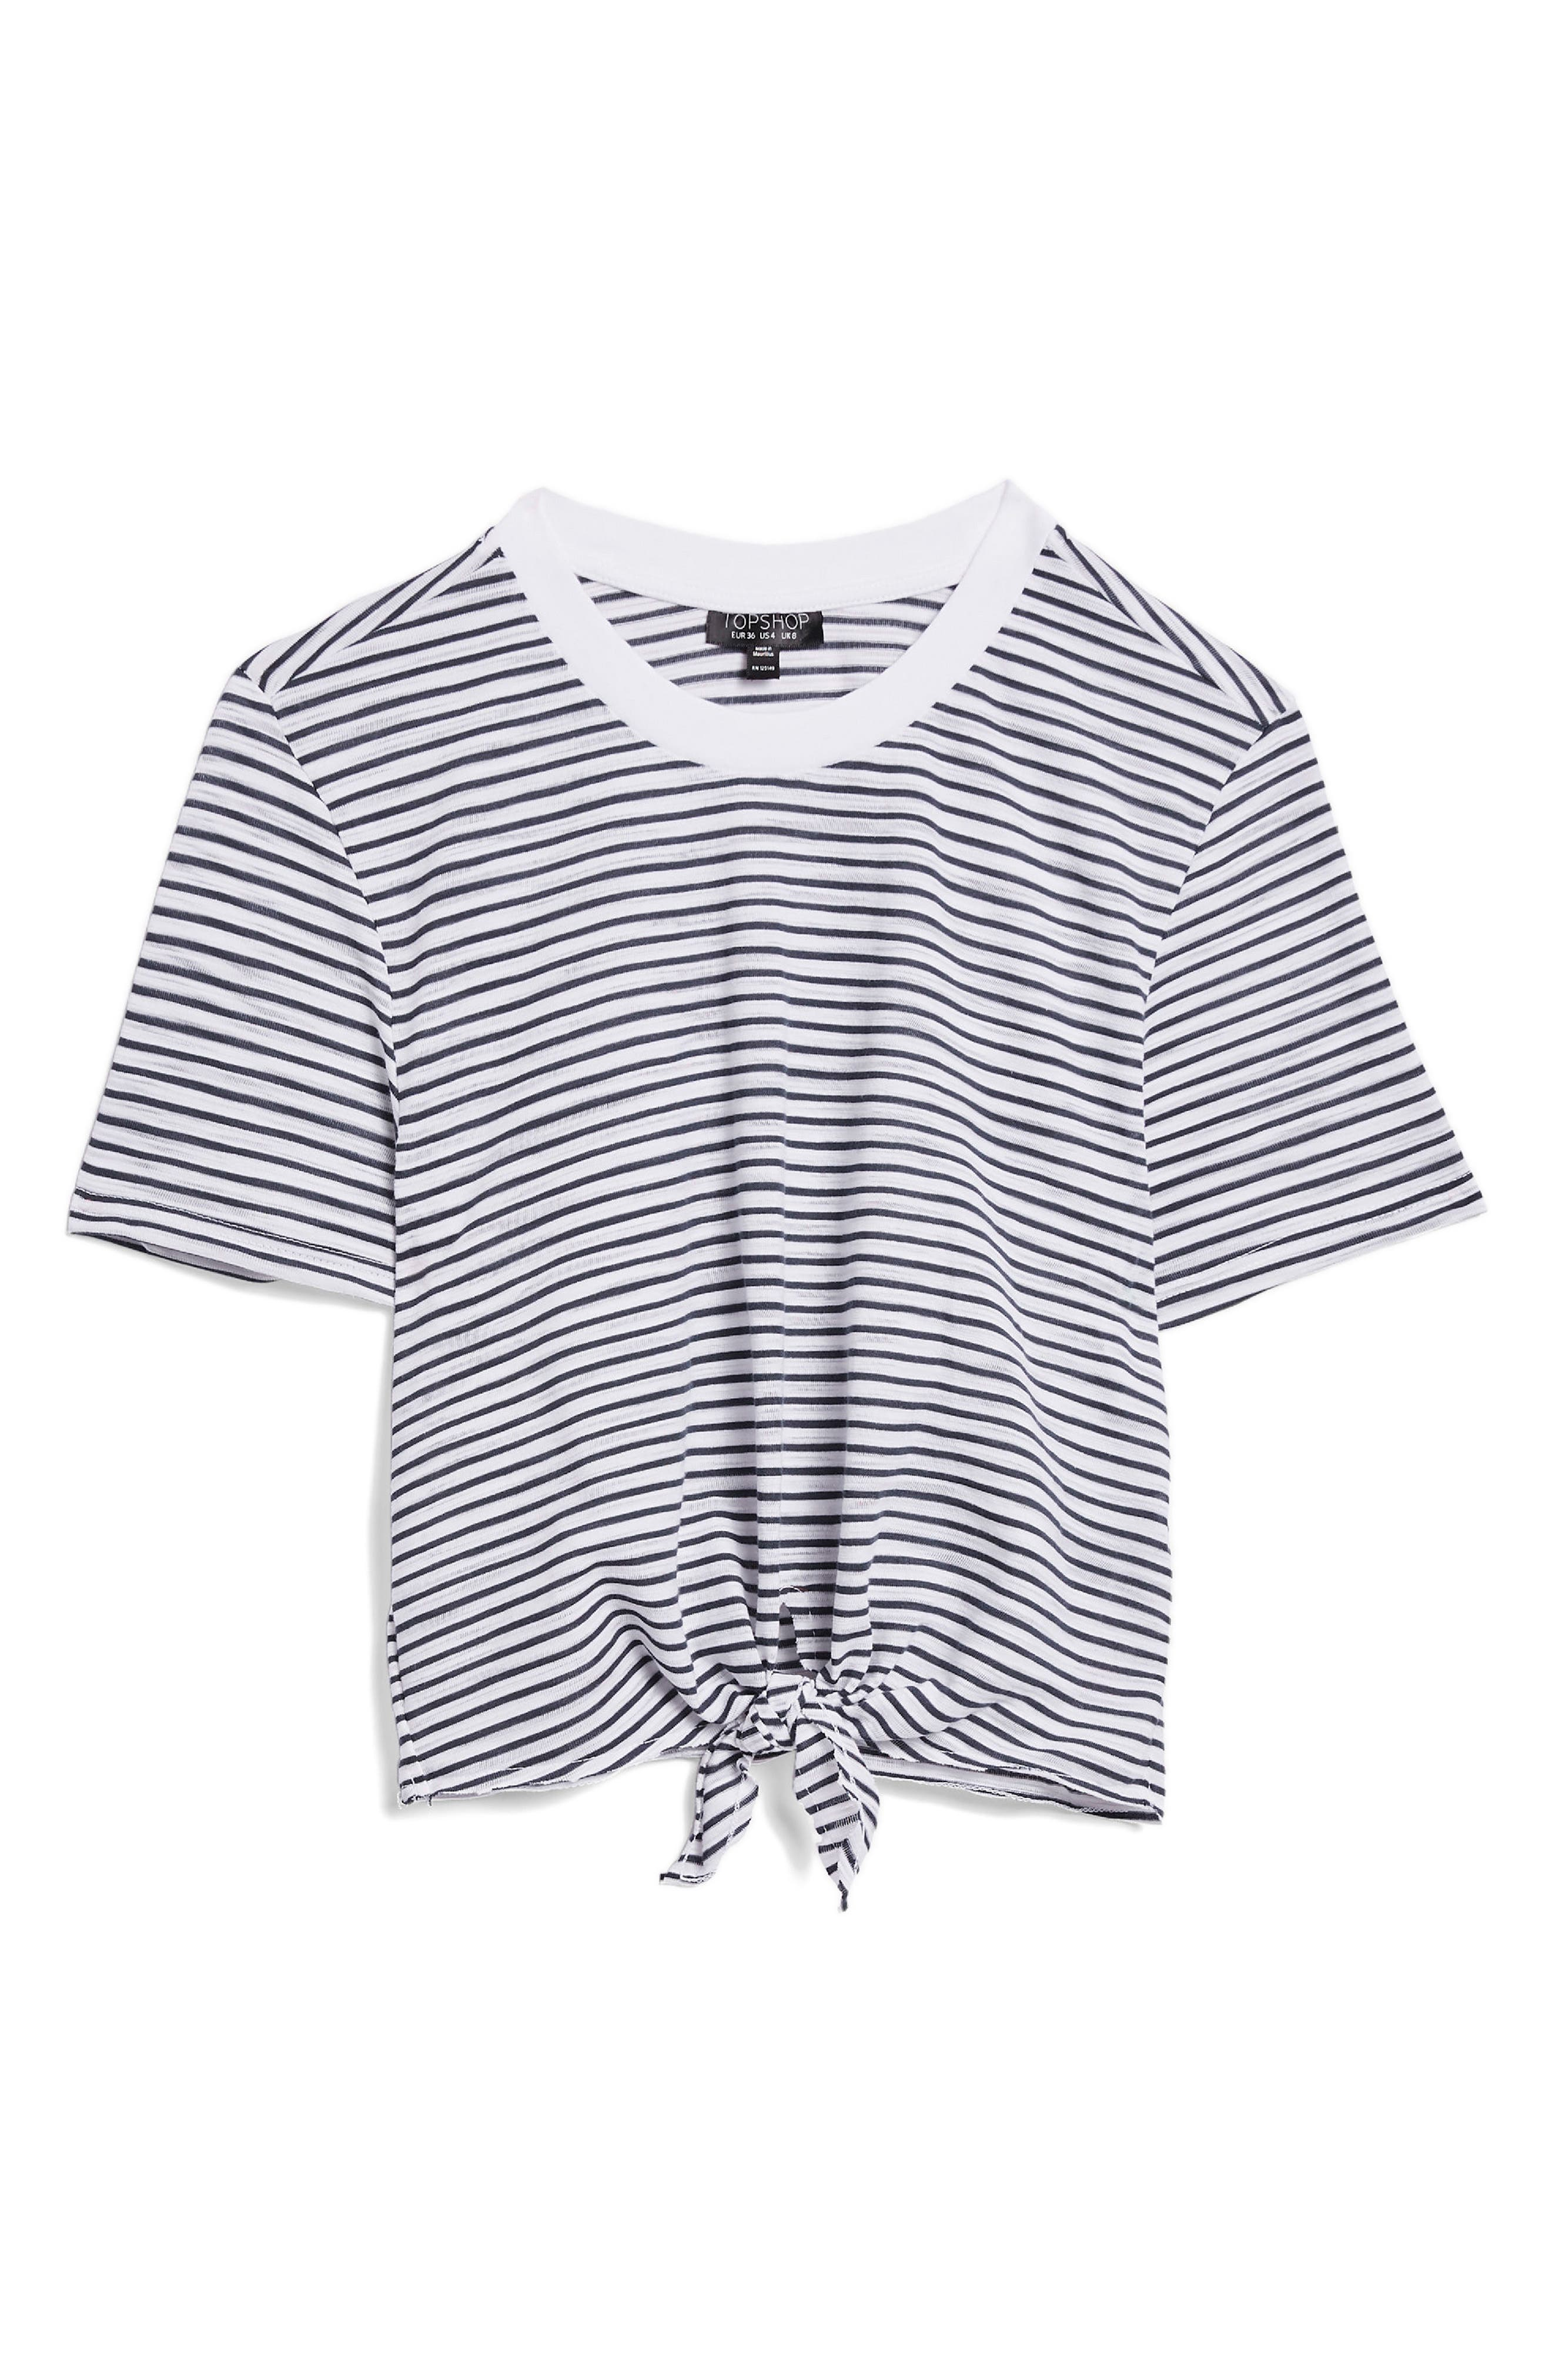 Stripe Front Tie Tee,                             Alternate thumbnail 2, color,                             NAVY BLUE MULTI